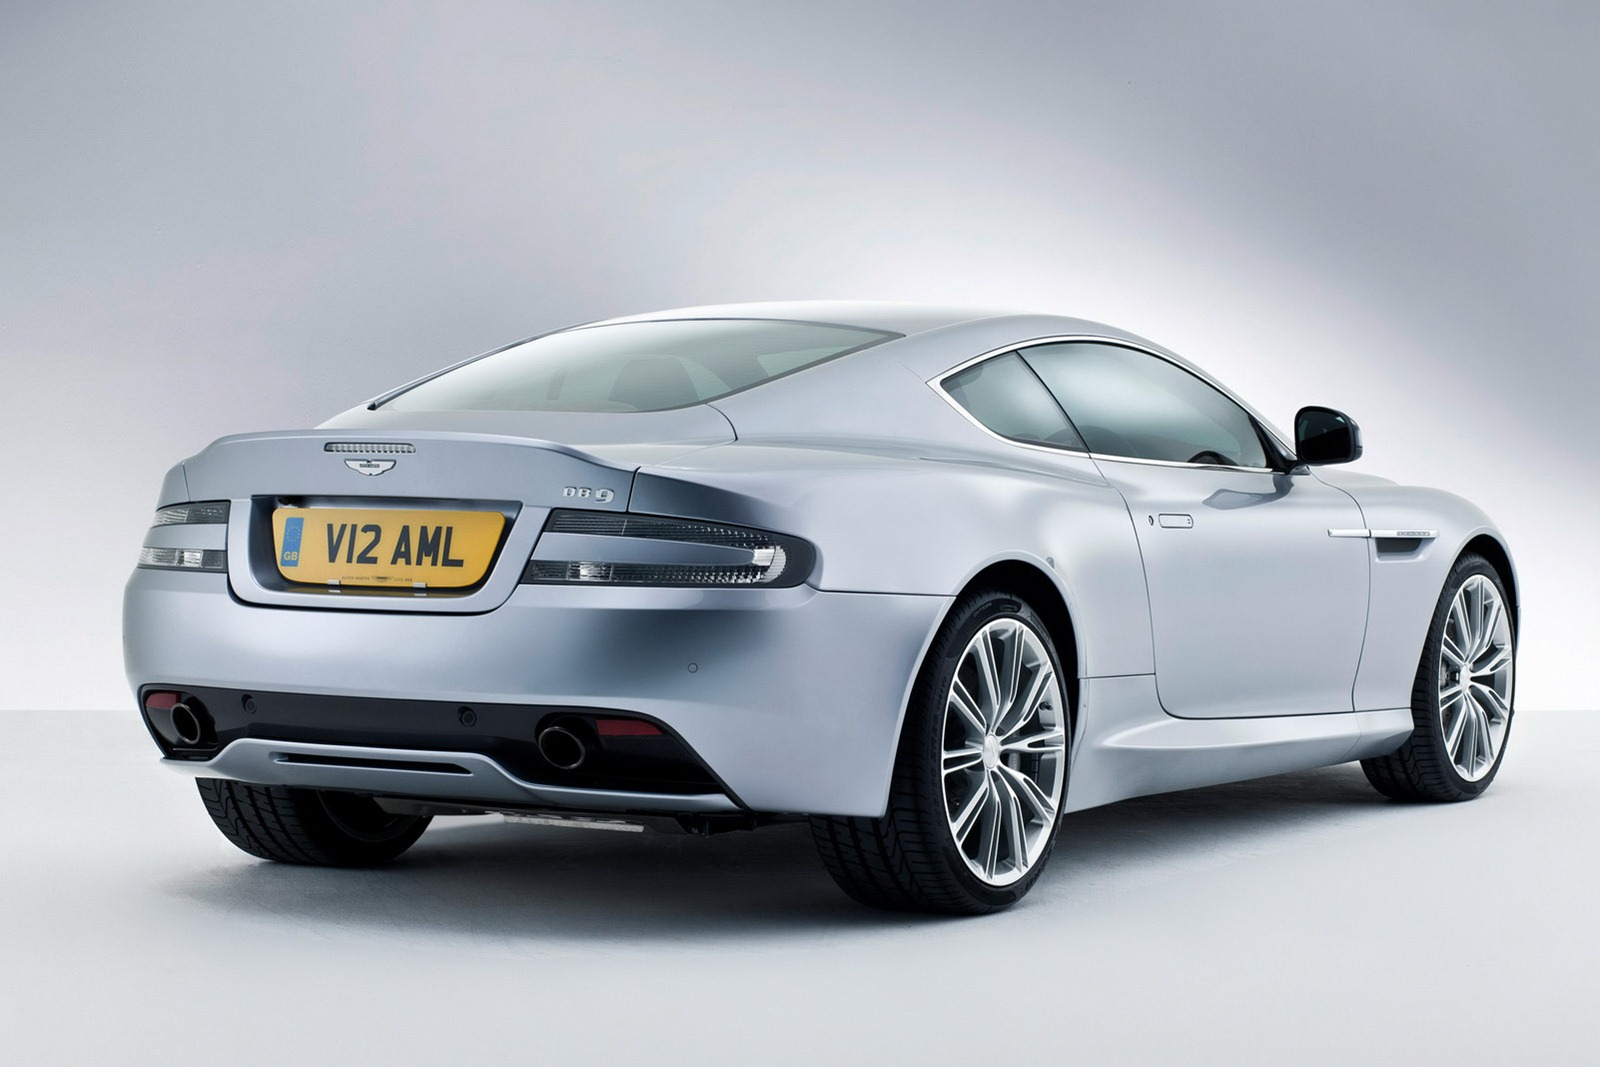 Aston_Martin_DB9_2013_Rear_3Q